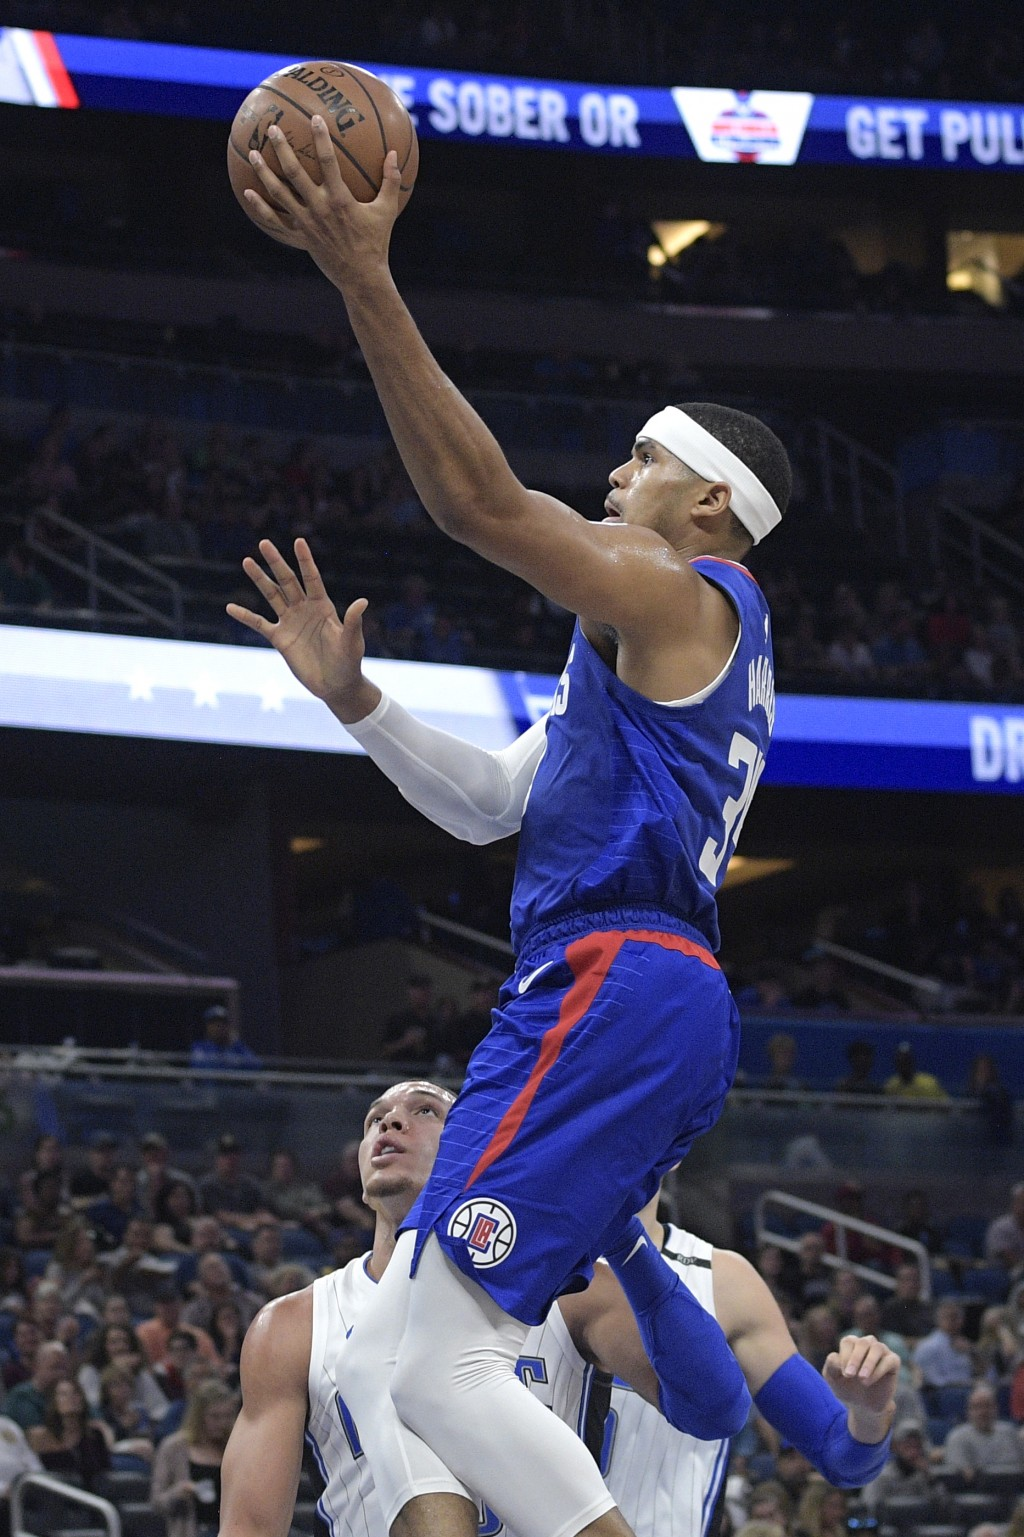 Los Angeles Clippers forward Tobias Harris goes up for a shot in front of Orlando Magic forward Aaron Gordon during the first half of an NBA basketbal